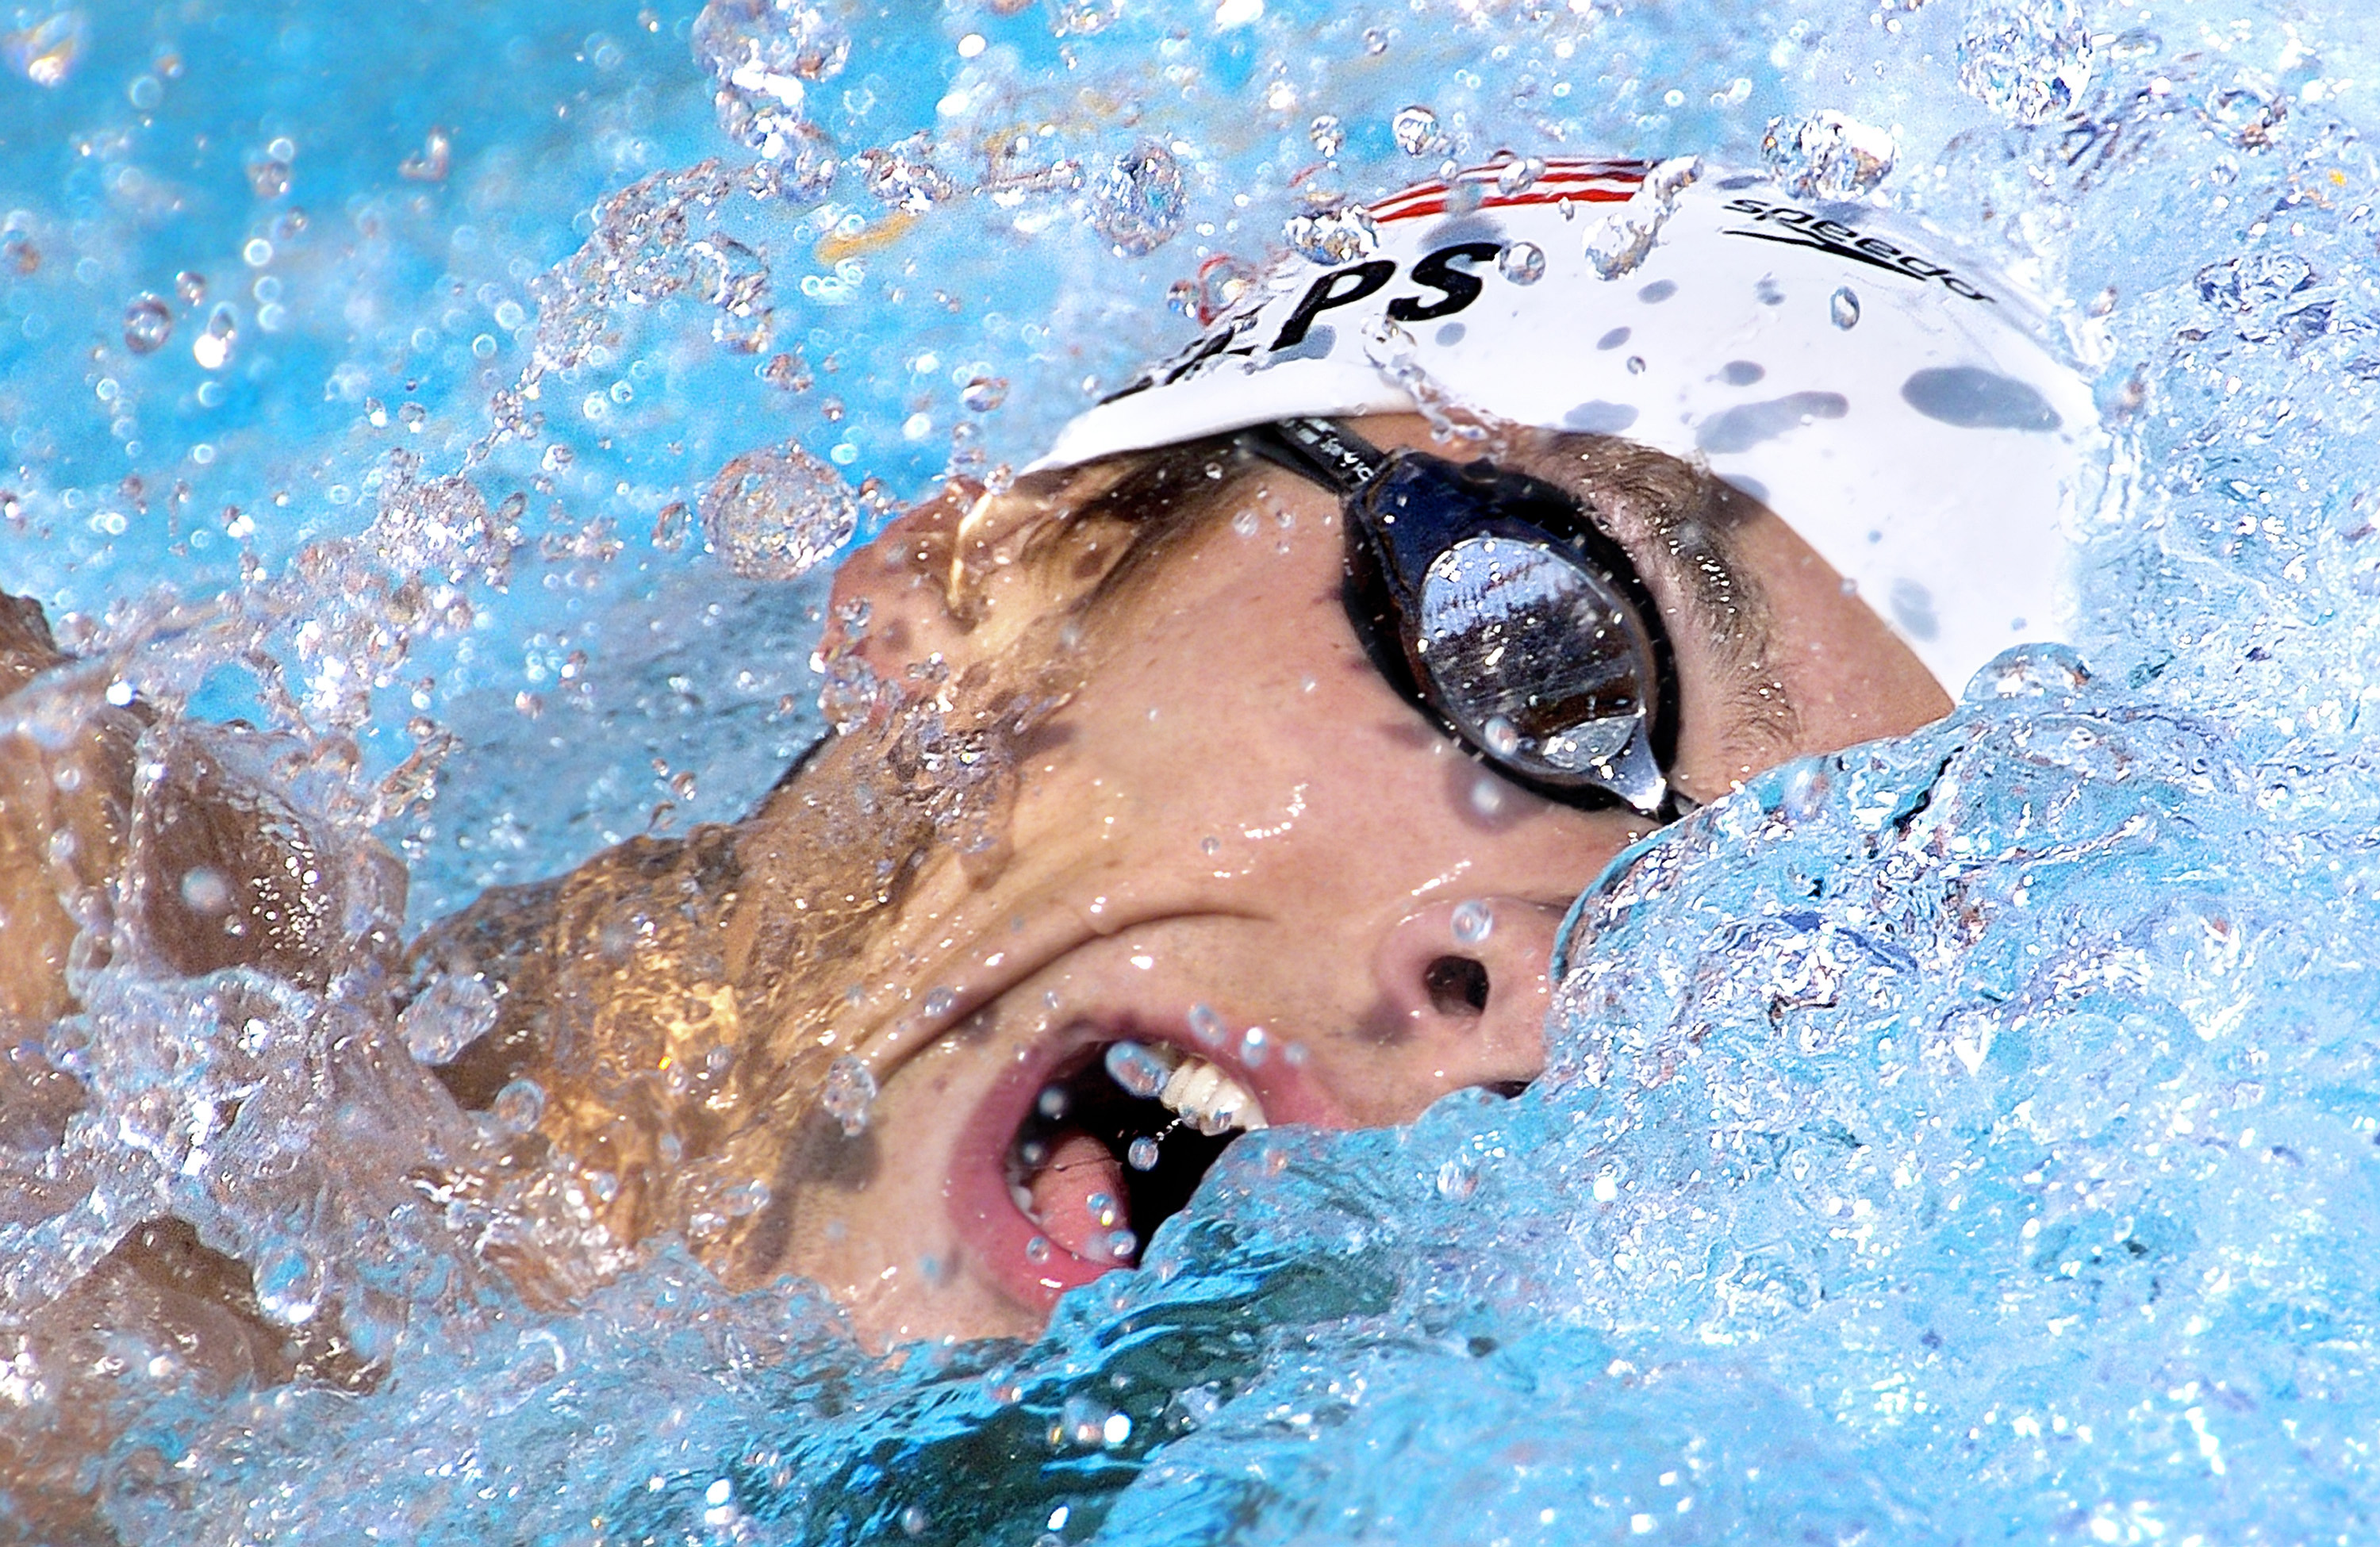 Michael-Phelps-Olympic-GOLD-300dpi